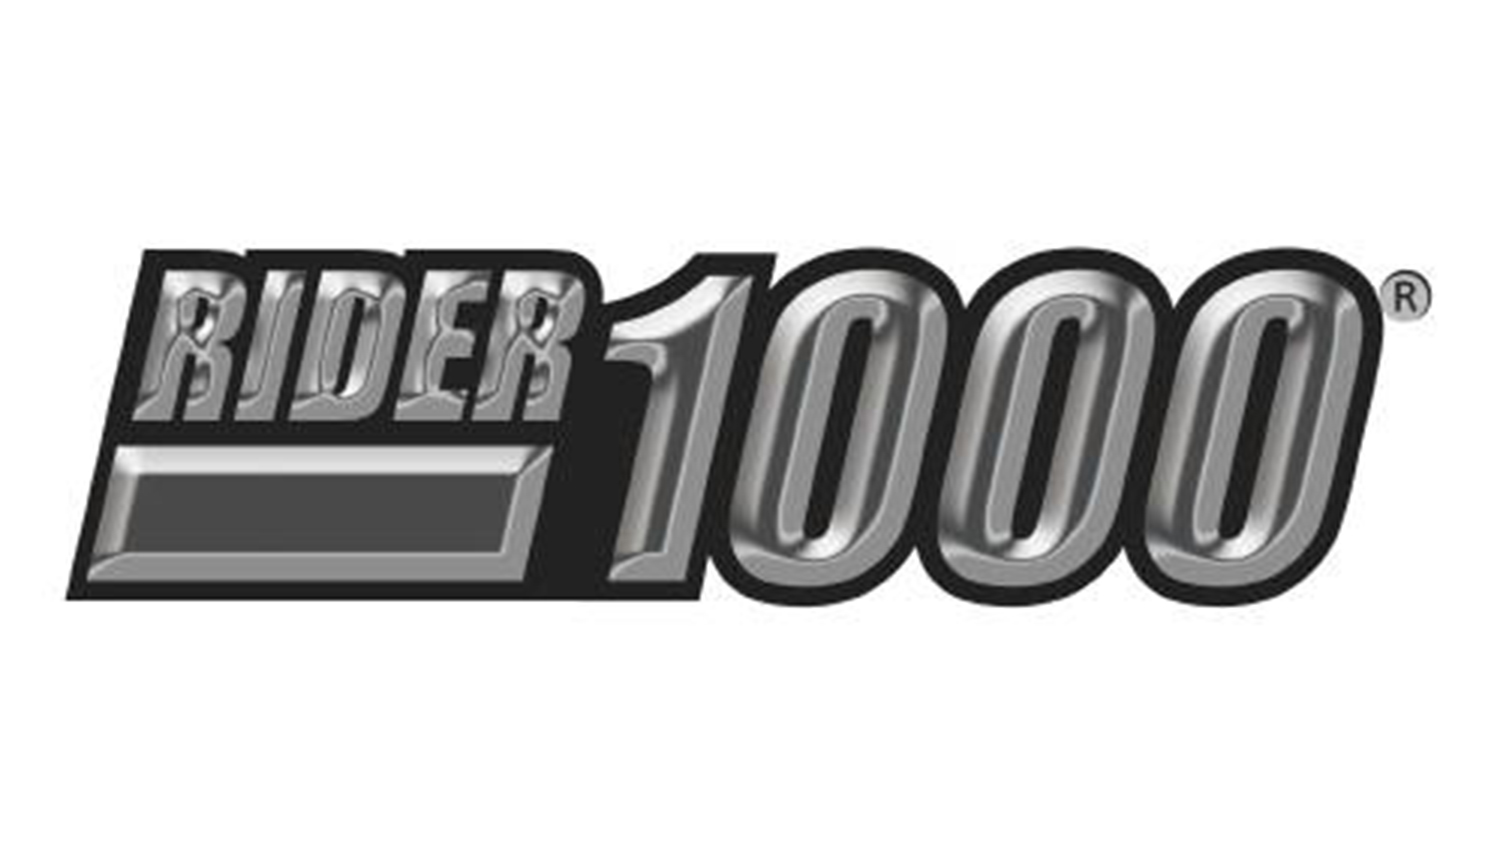 Rider 1000: disponible el formulario de inscripción para el briefing de este sábado 11 de abril